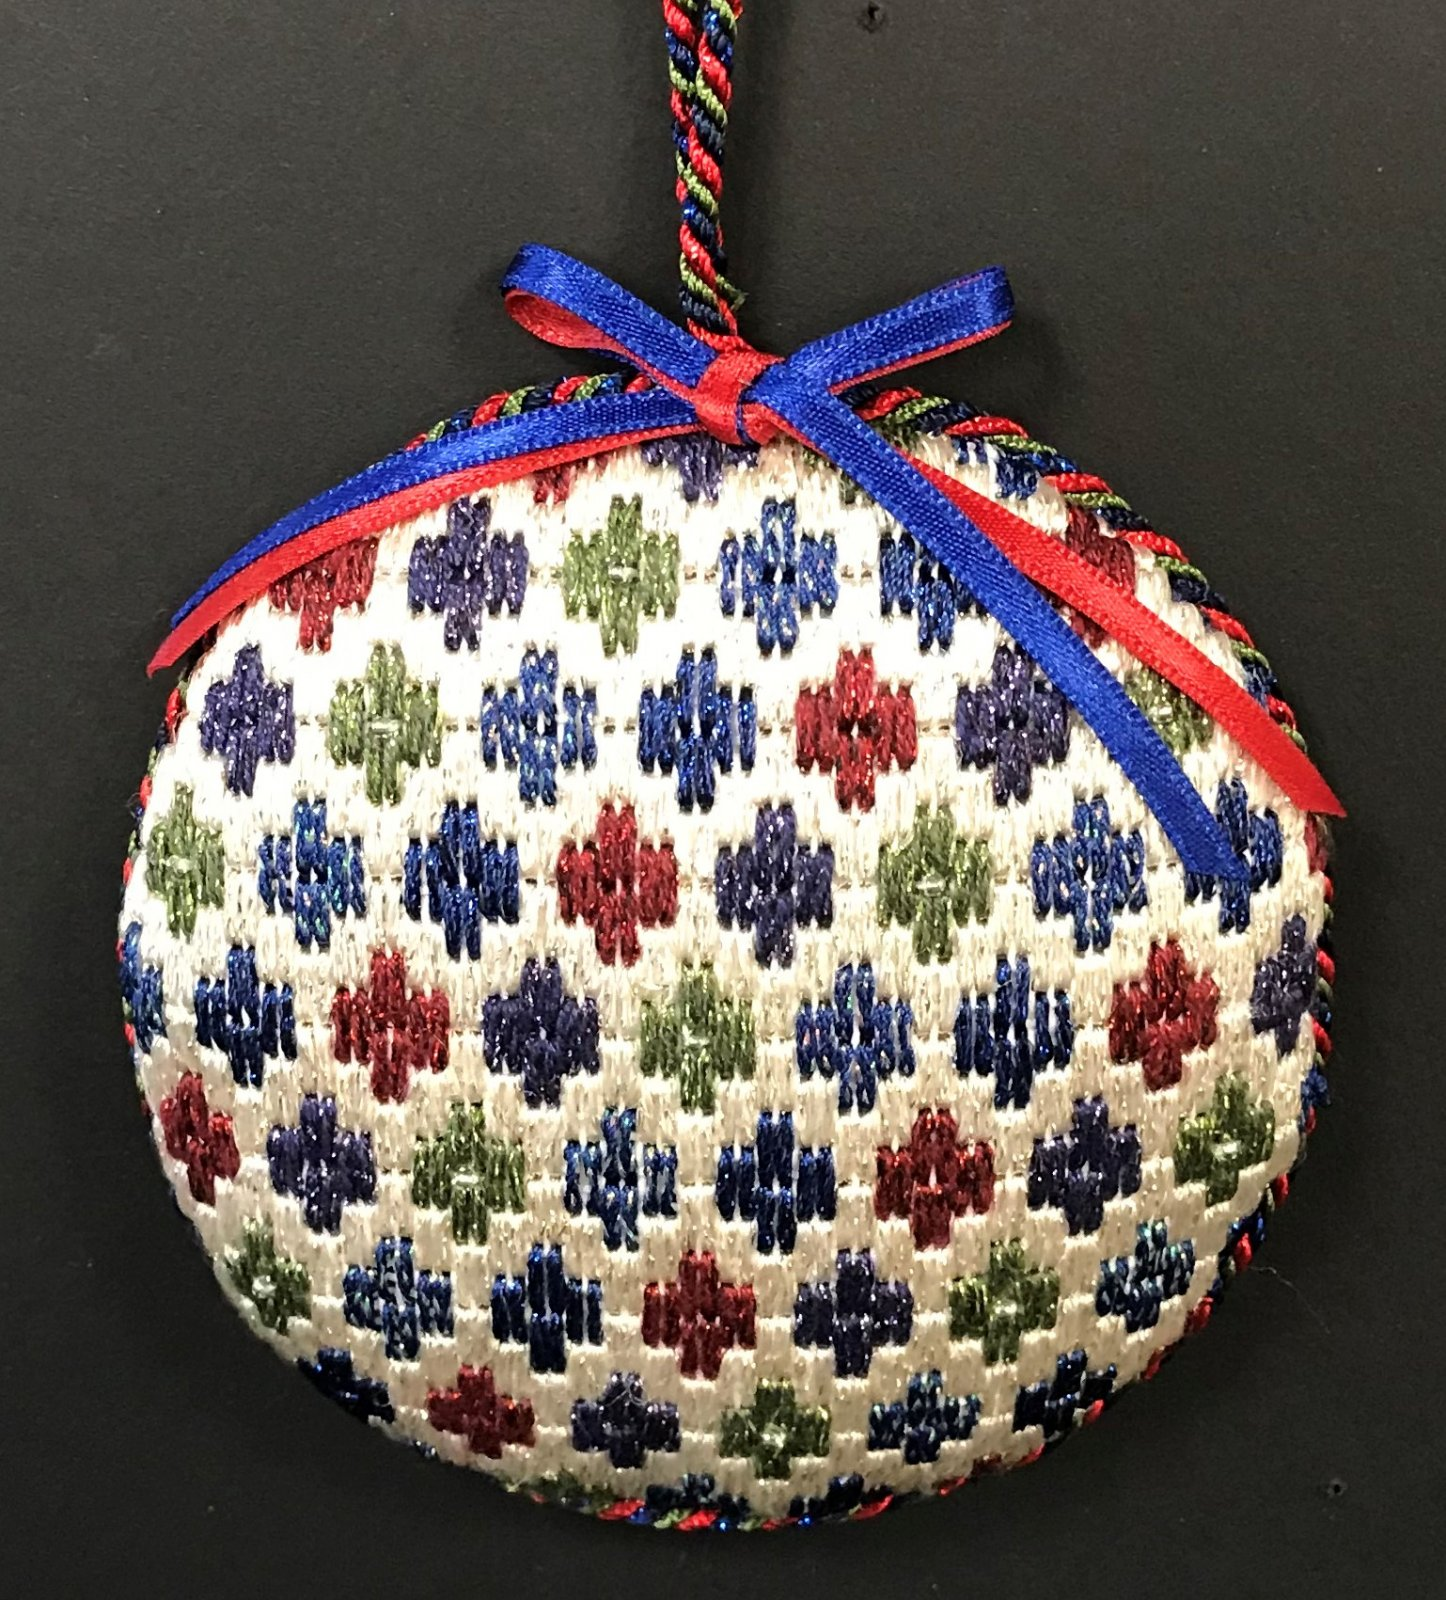 Bargello Ornament #4 - stitched by Stacey G.